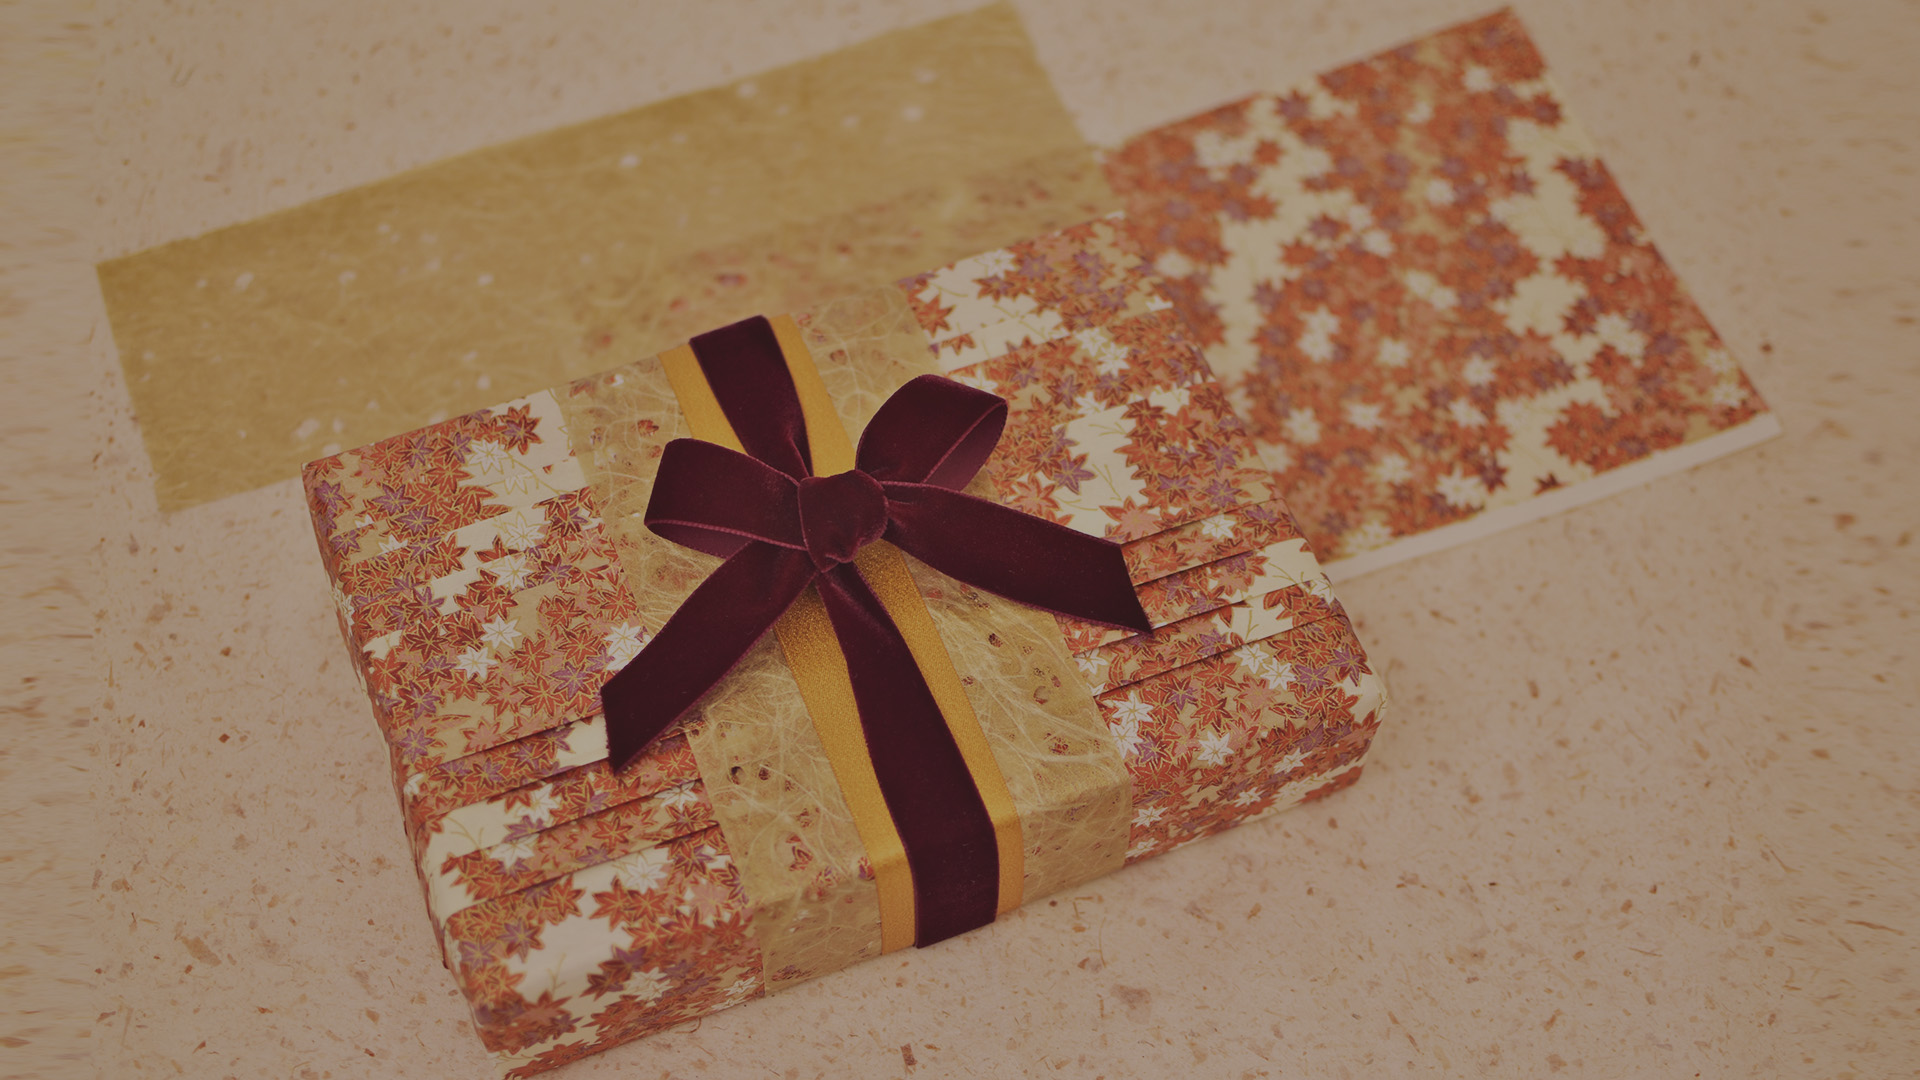 Gift wrapped in a paper with floral pattern an pink flowers as decoration.